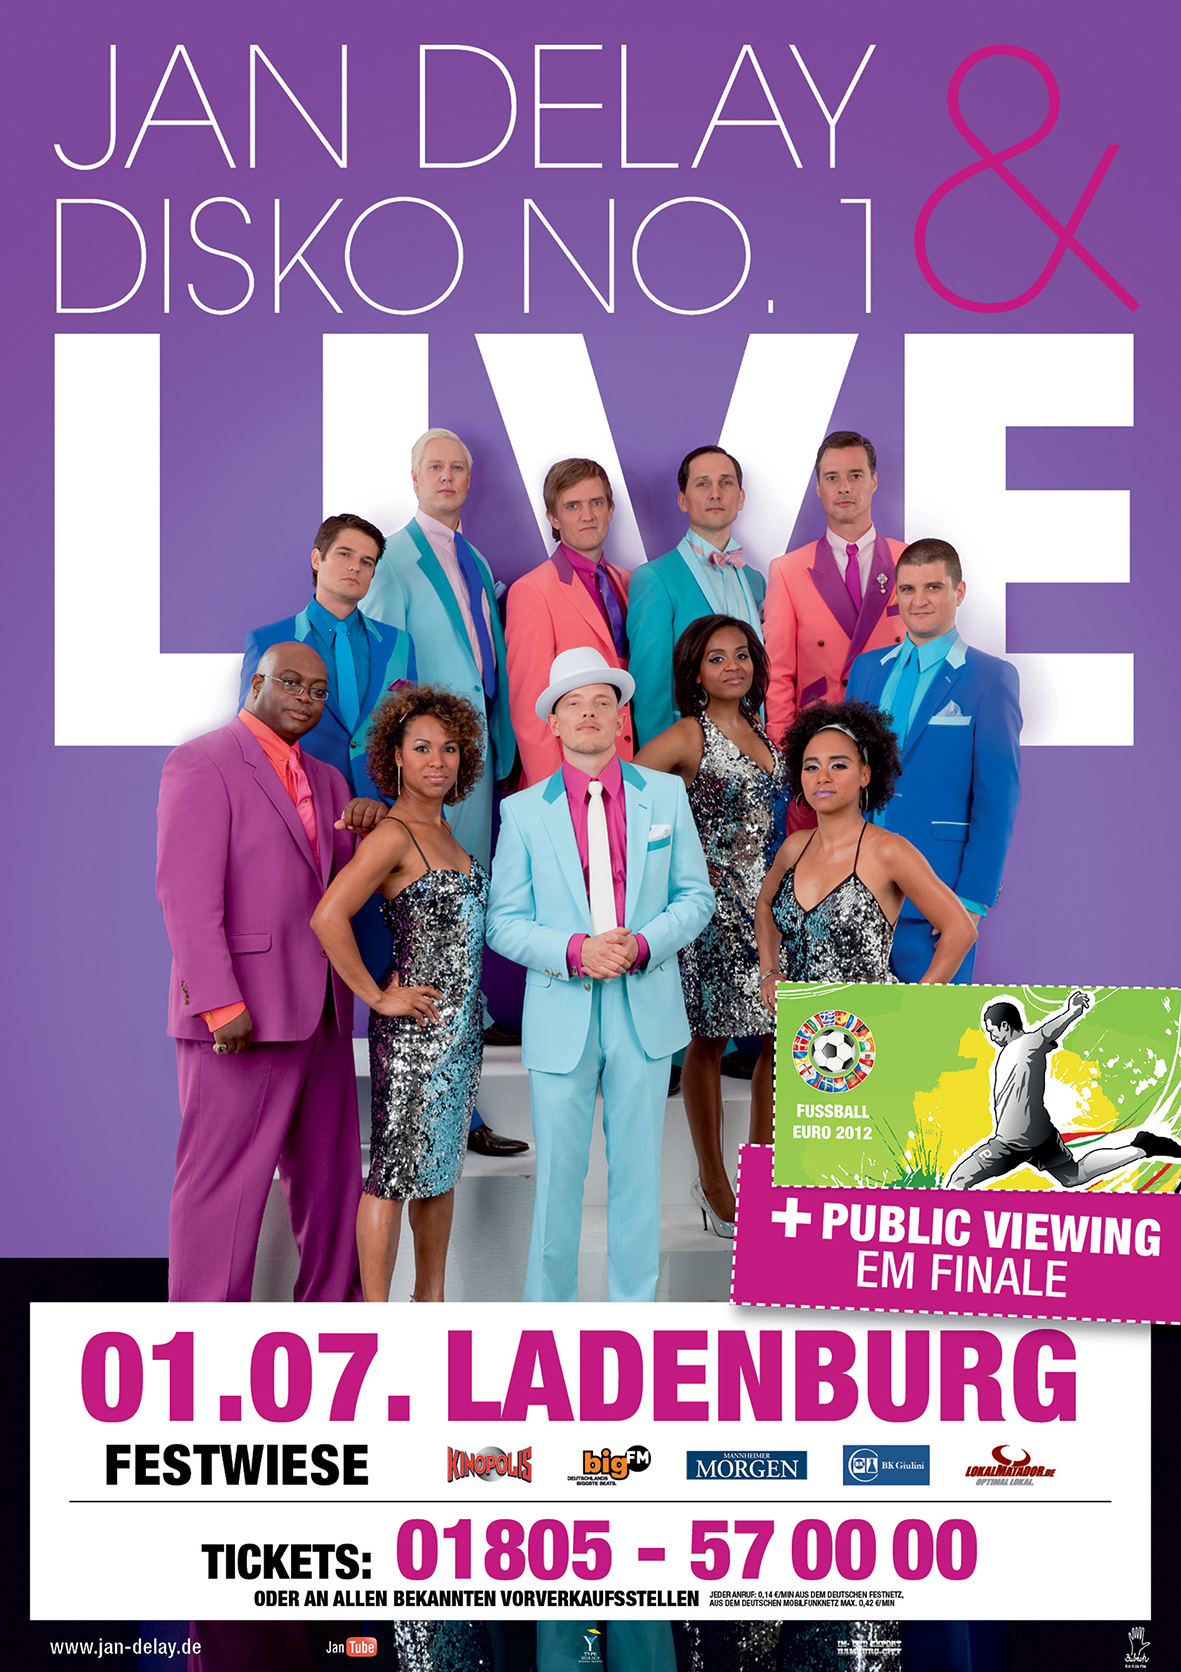 Jan Delay & Disko No.1 · Ladenburg